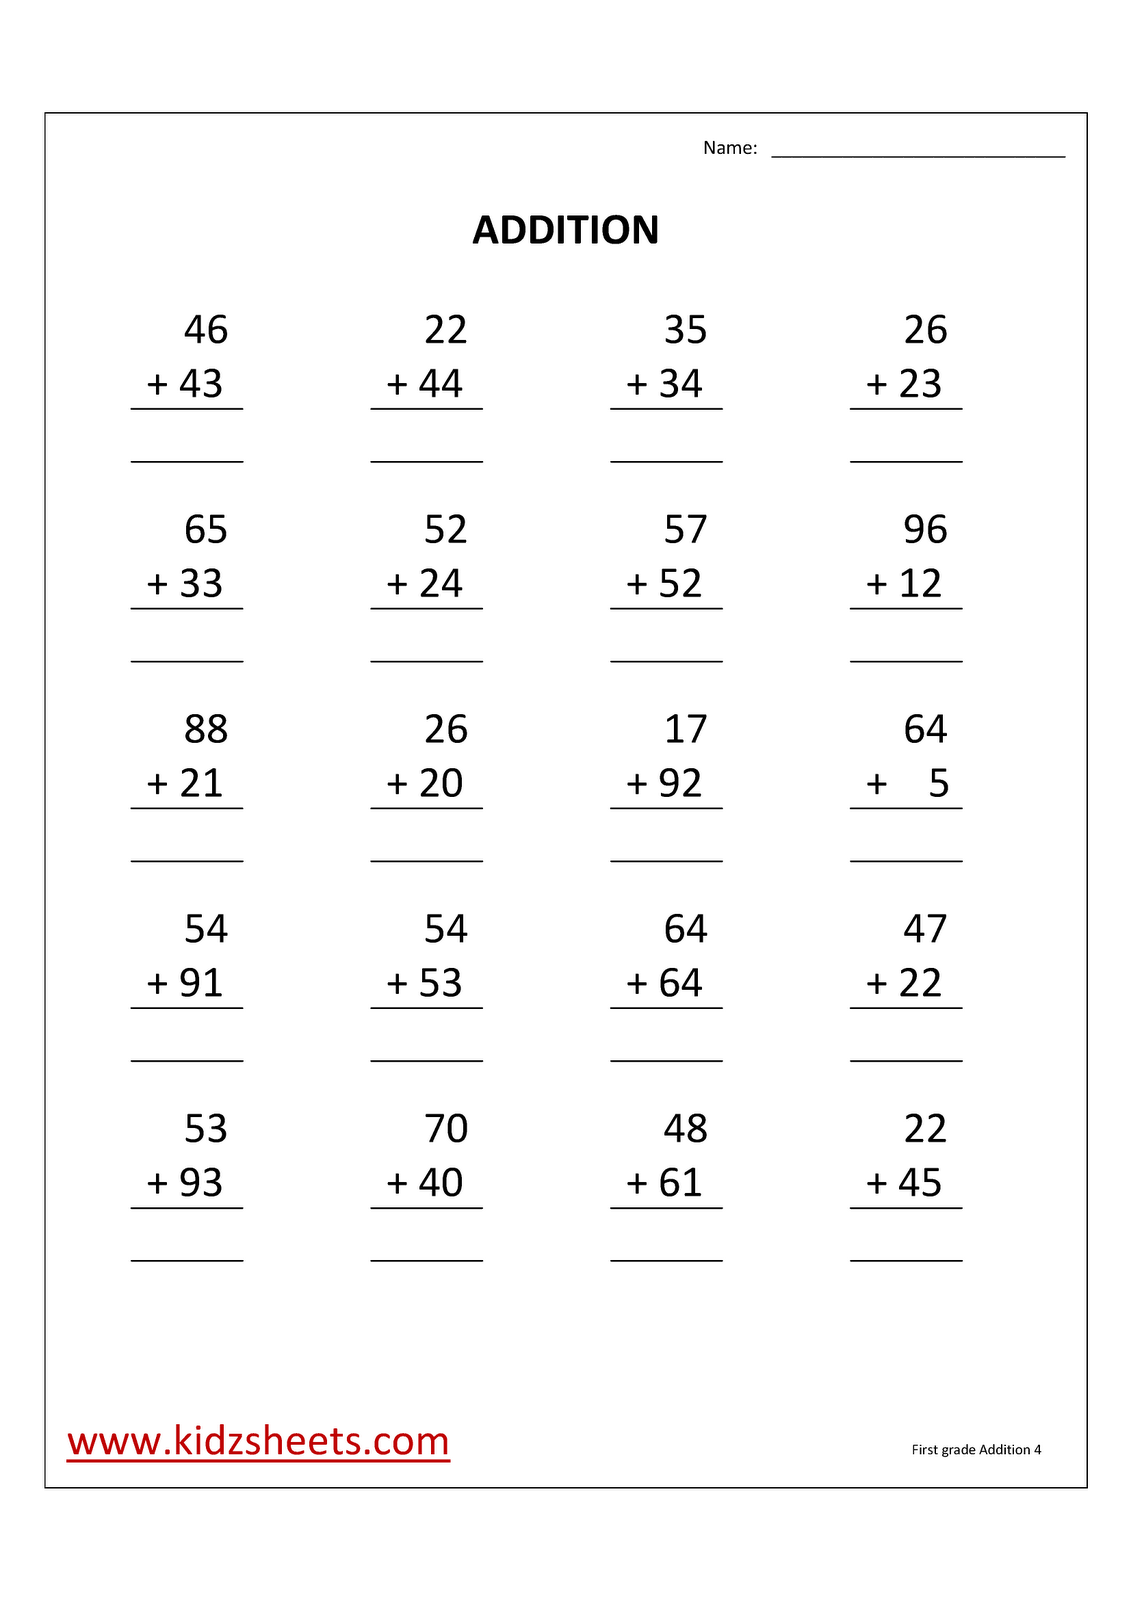 Kidz Worksheets First Grade Addition Worksheet4